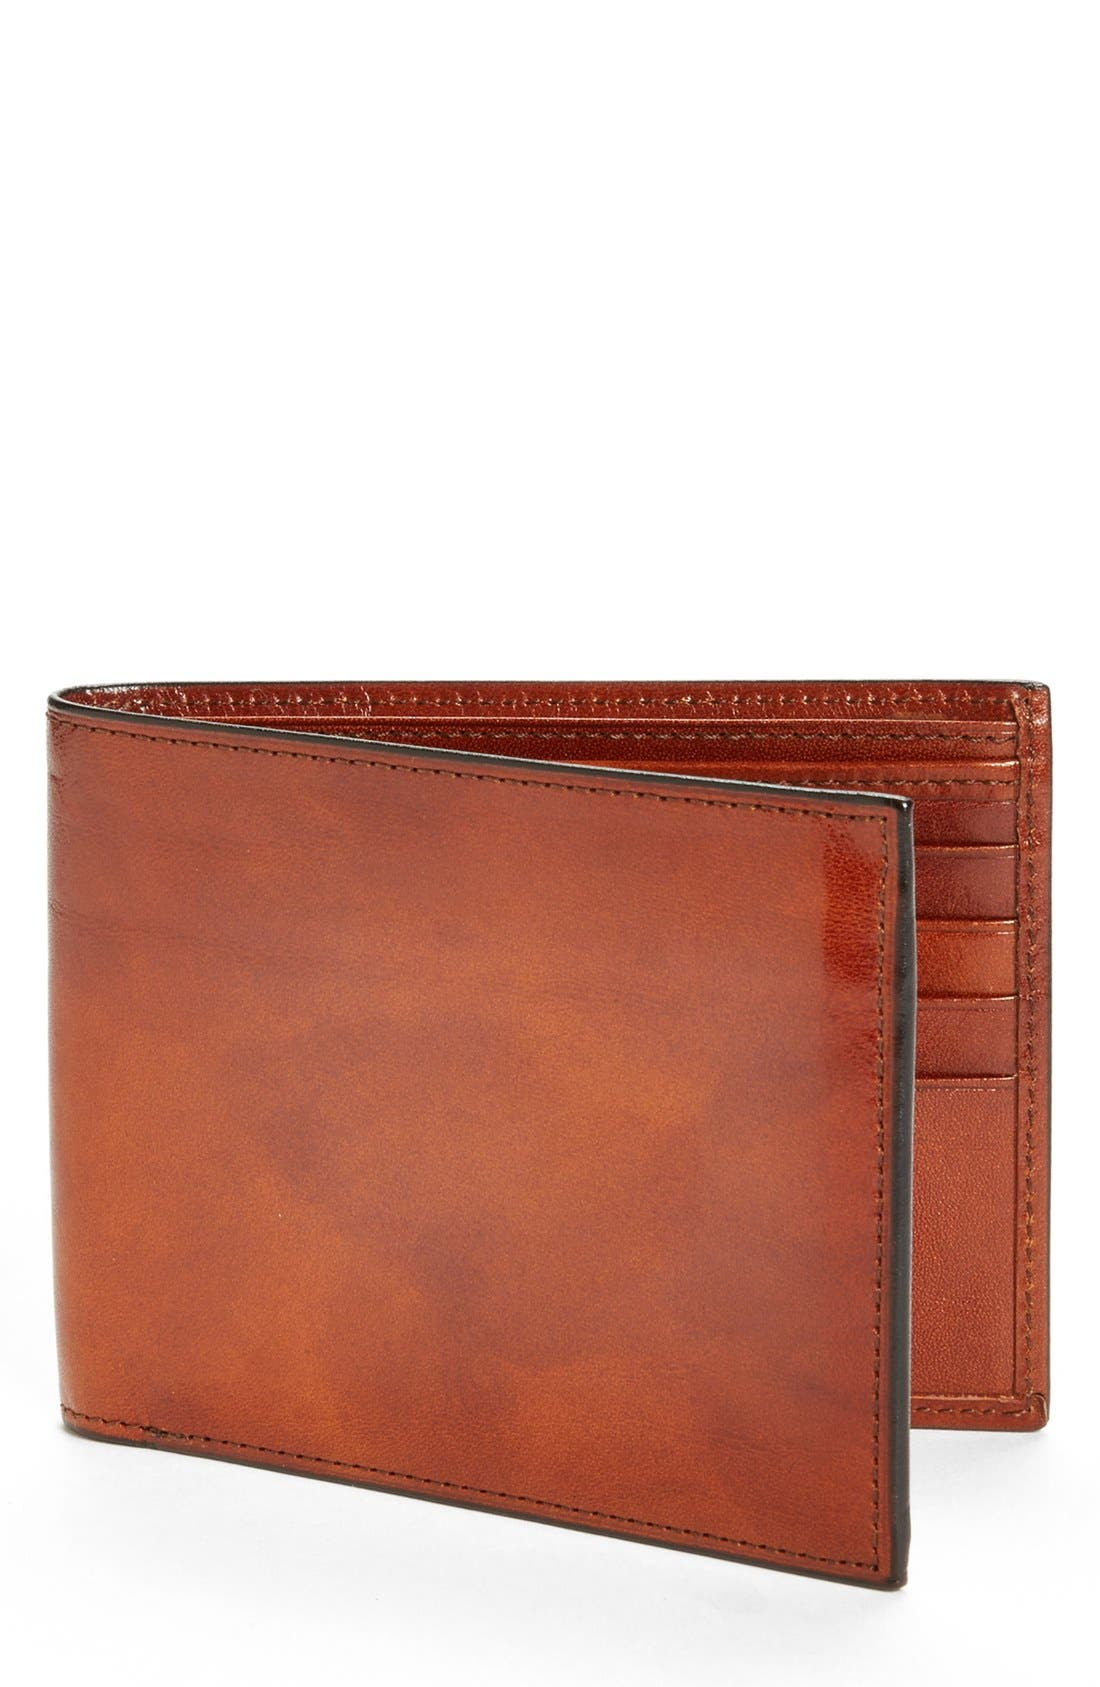 ID Flap Leather Wallet,                         Main,                         color,